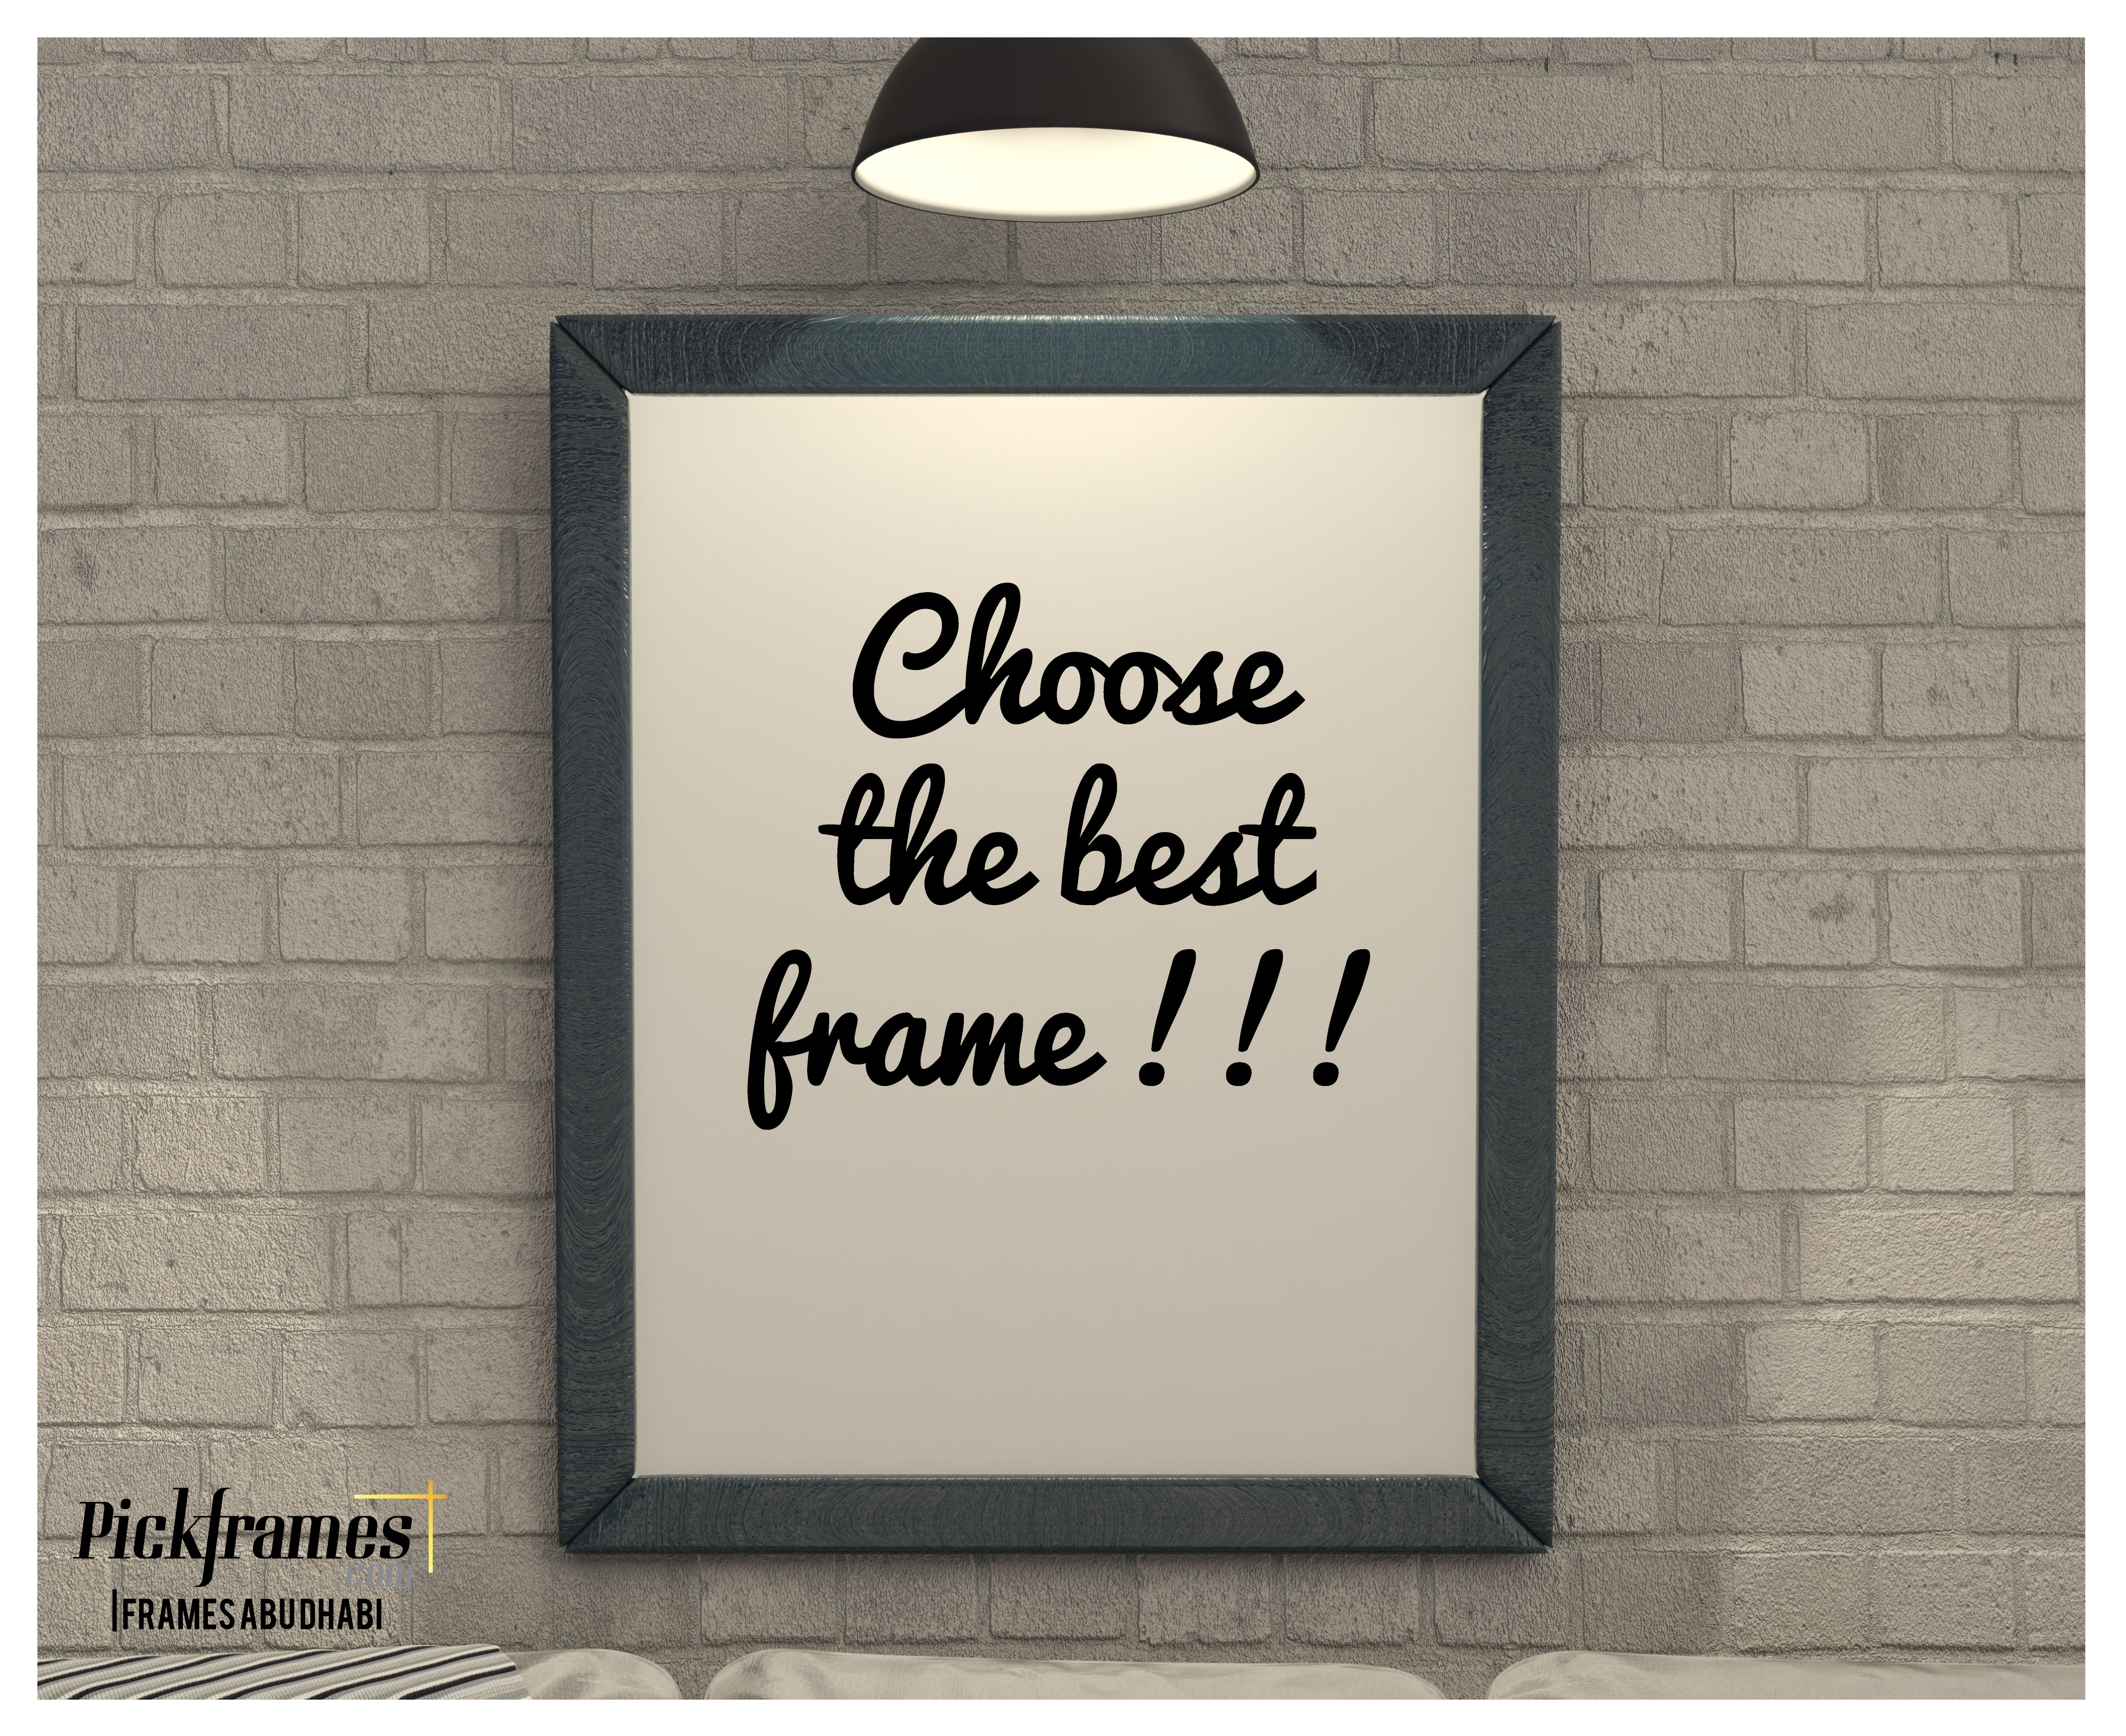 How to choose a photo frame